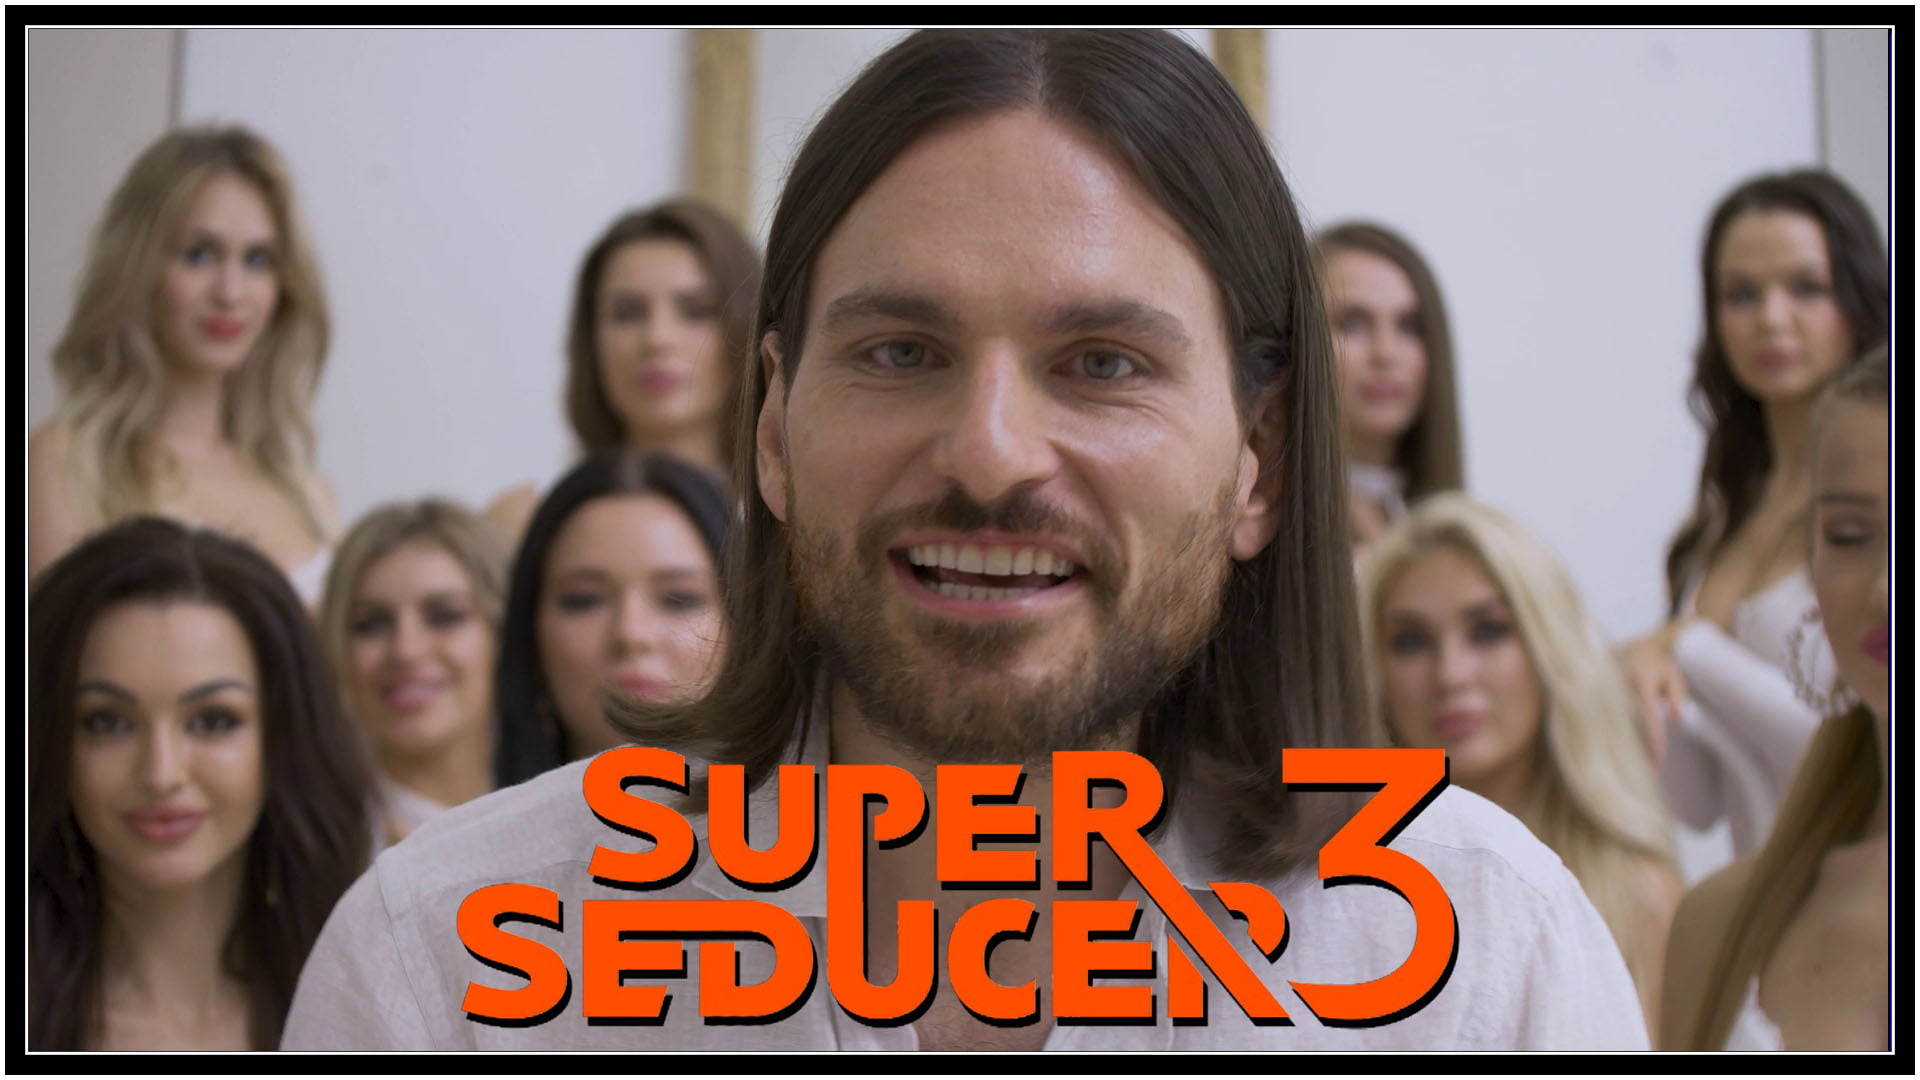 Super Seducer 3: The Final Seduction (PC) Review | Censored Edition